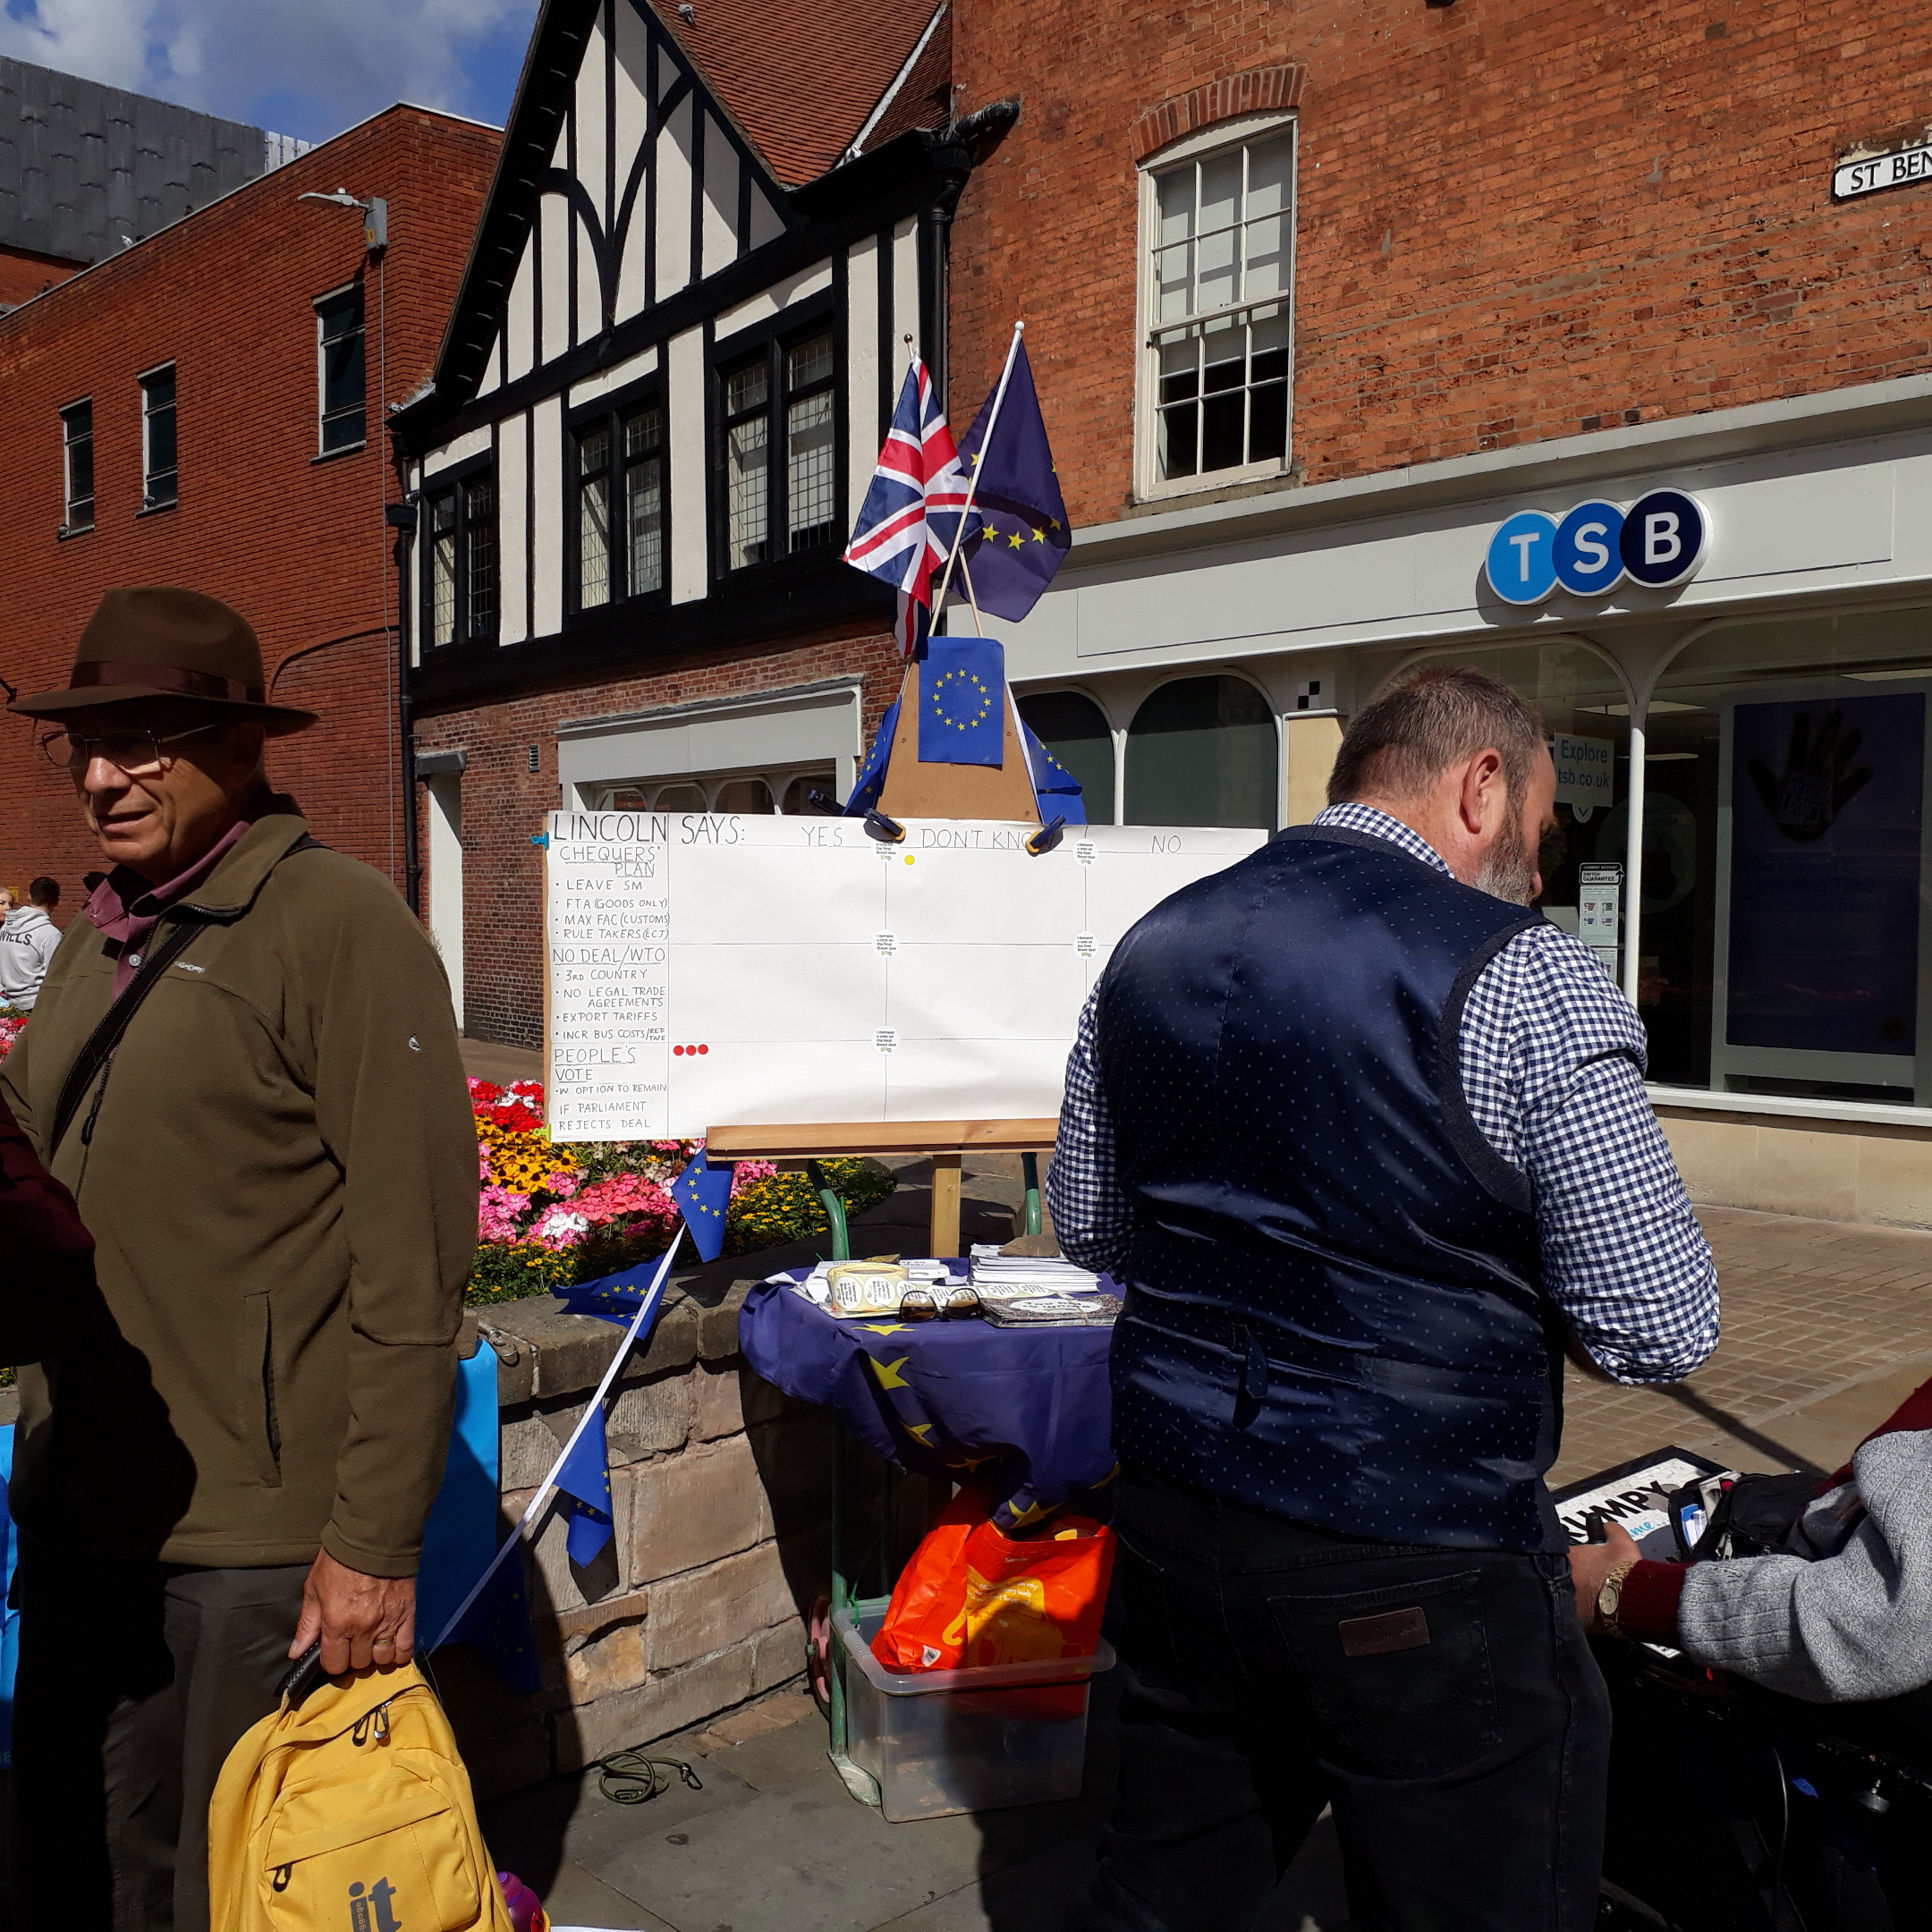 Lincoln_Peoples_Vote_Stall_2_25-08-18.jpg